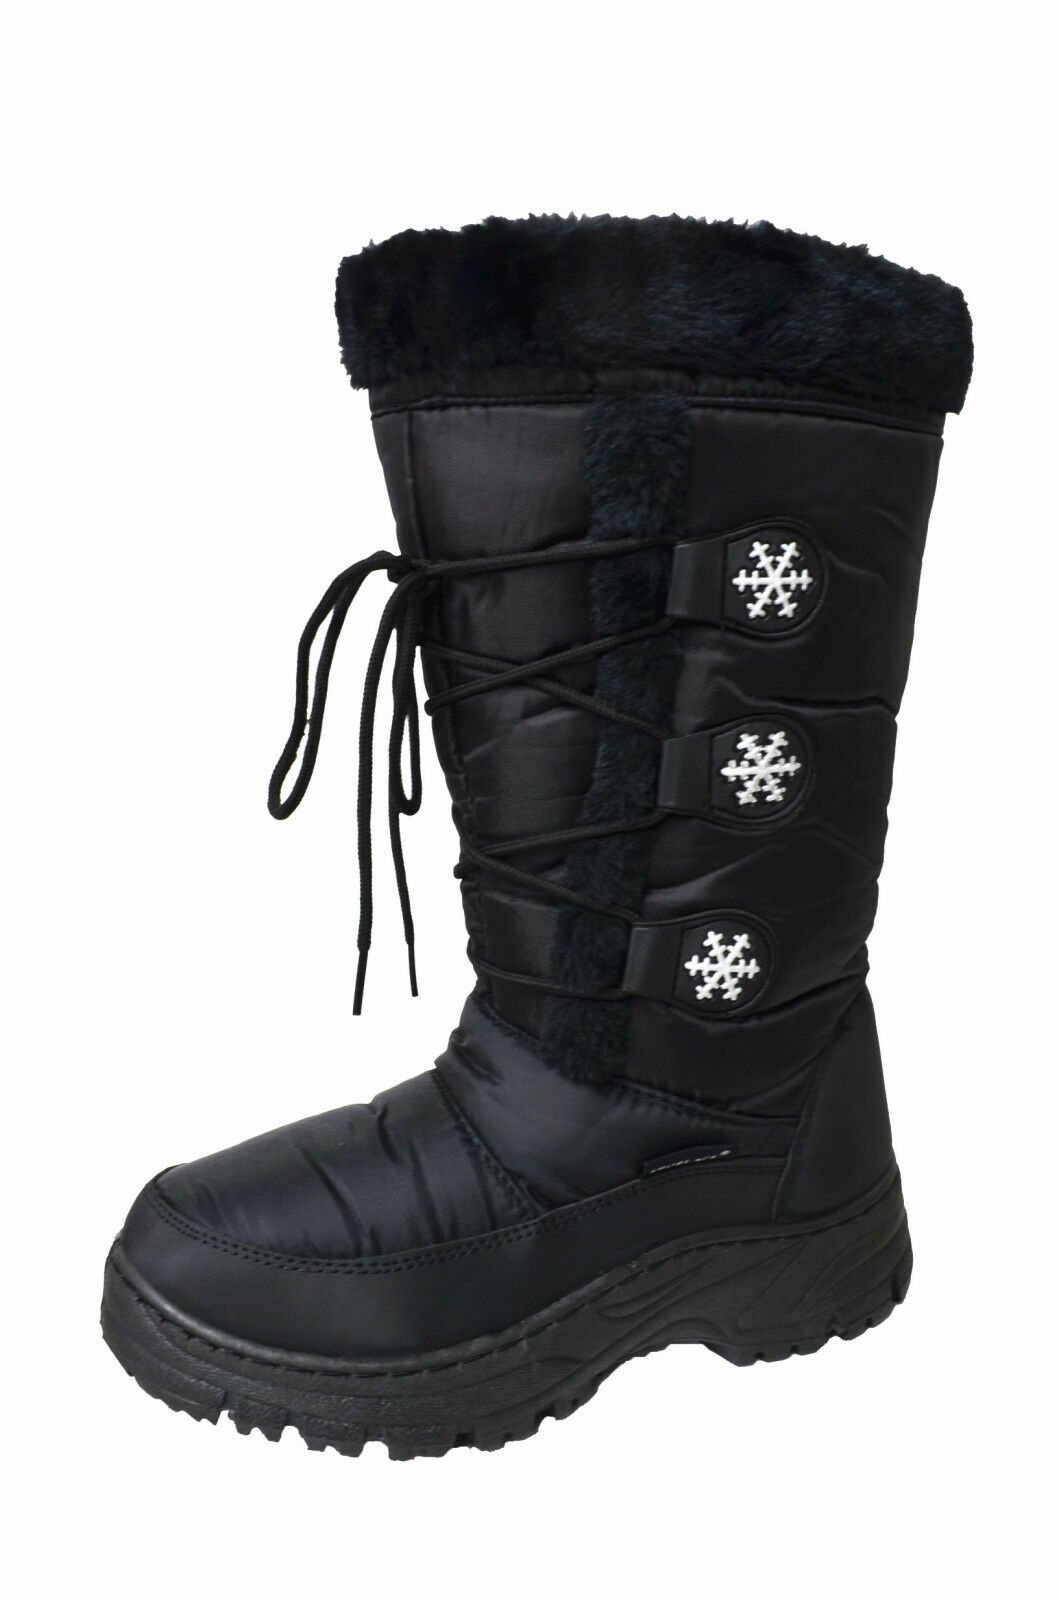 Women's Water Resistant Insulated Winter Snow Boots Fleece Lining Snow Marley-03